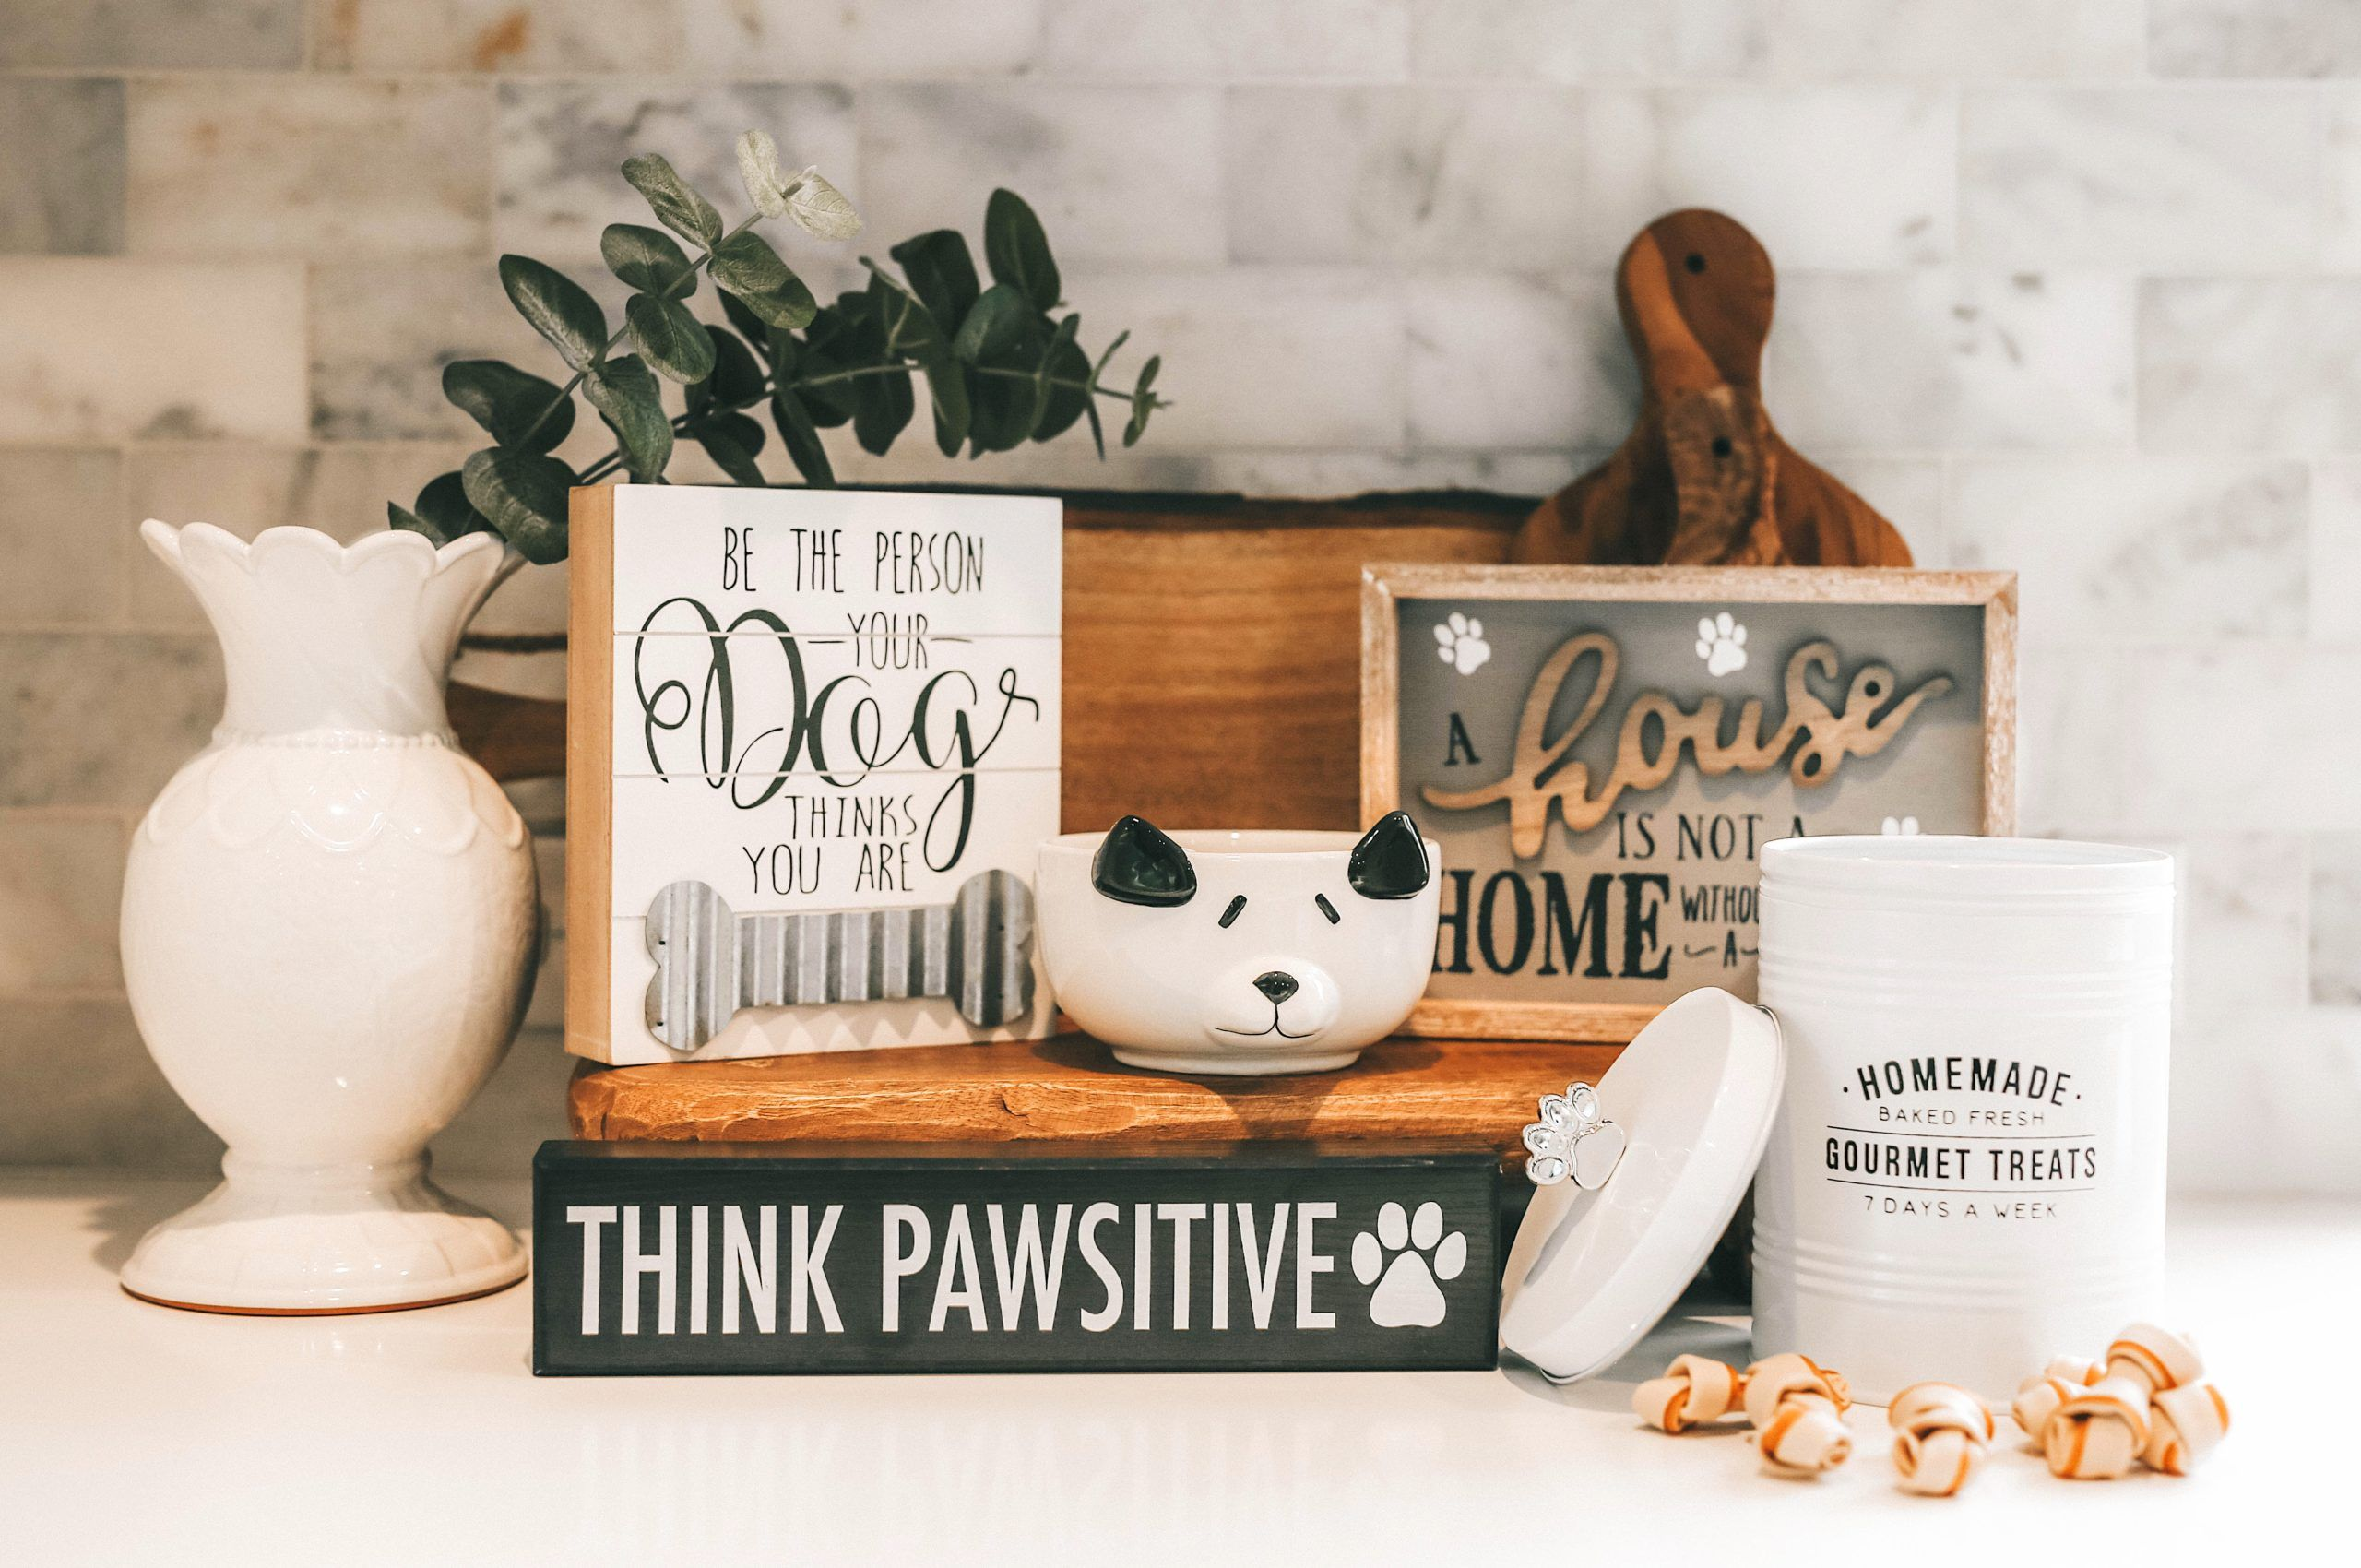 Pamper Your Pet On A Budget Nashville Life And Style Dressed To Kill In 2020 Pastel Home Decor Your Pet Pet Hacks